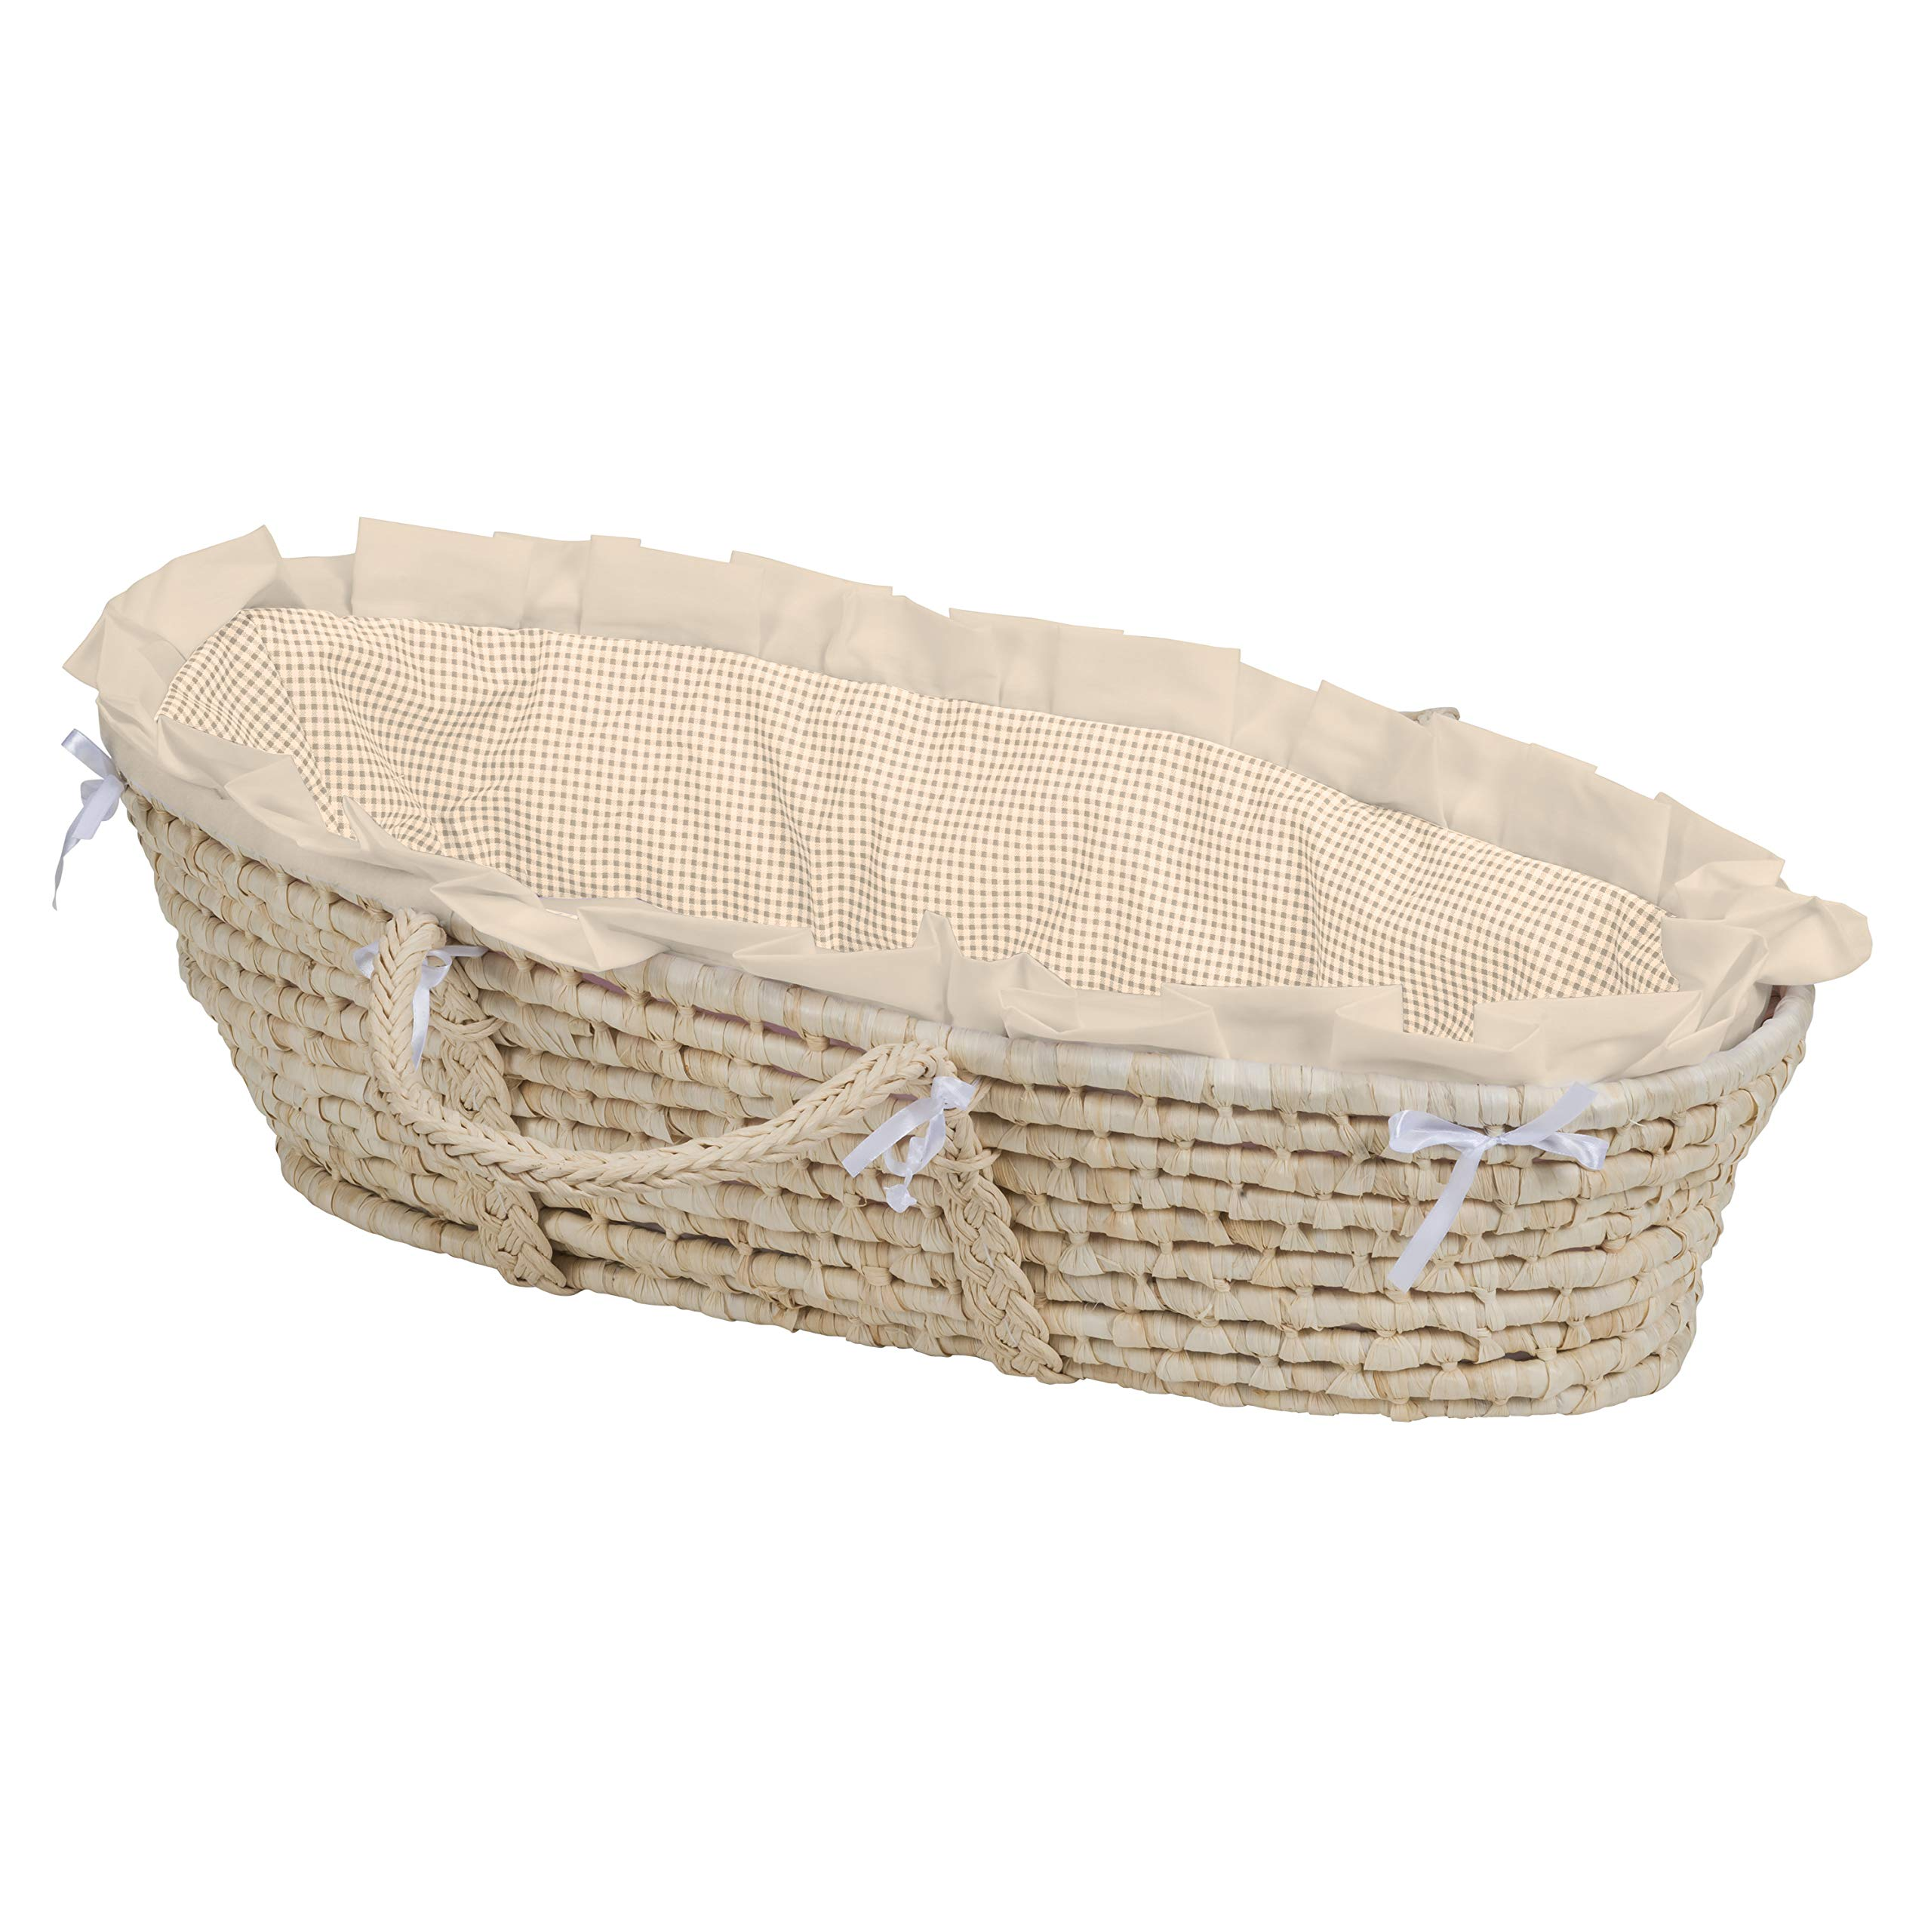 Baby Moses Basket with Liner, Sheet, and Pad by Badger Basket